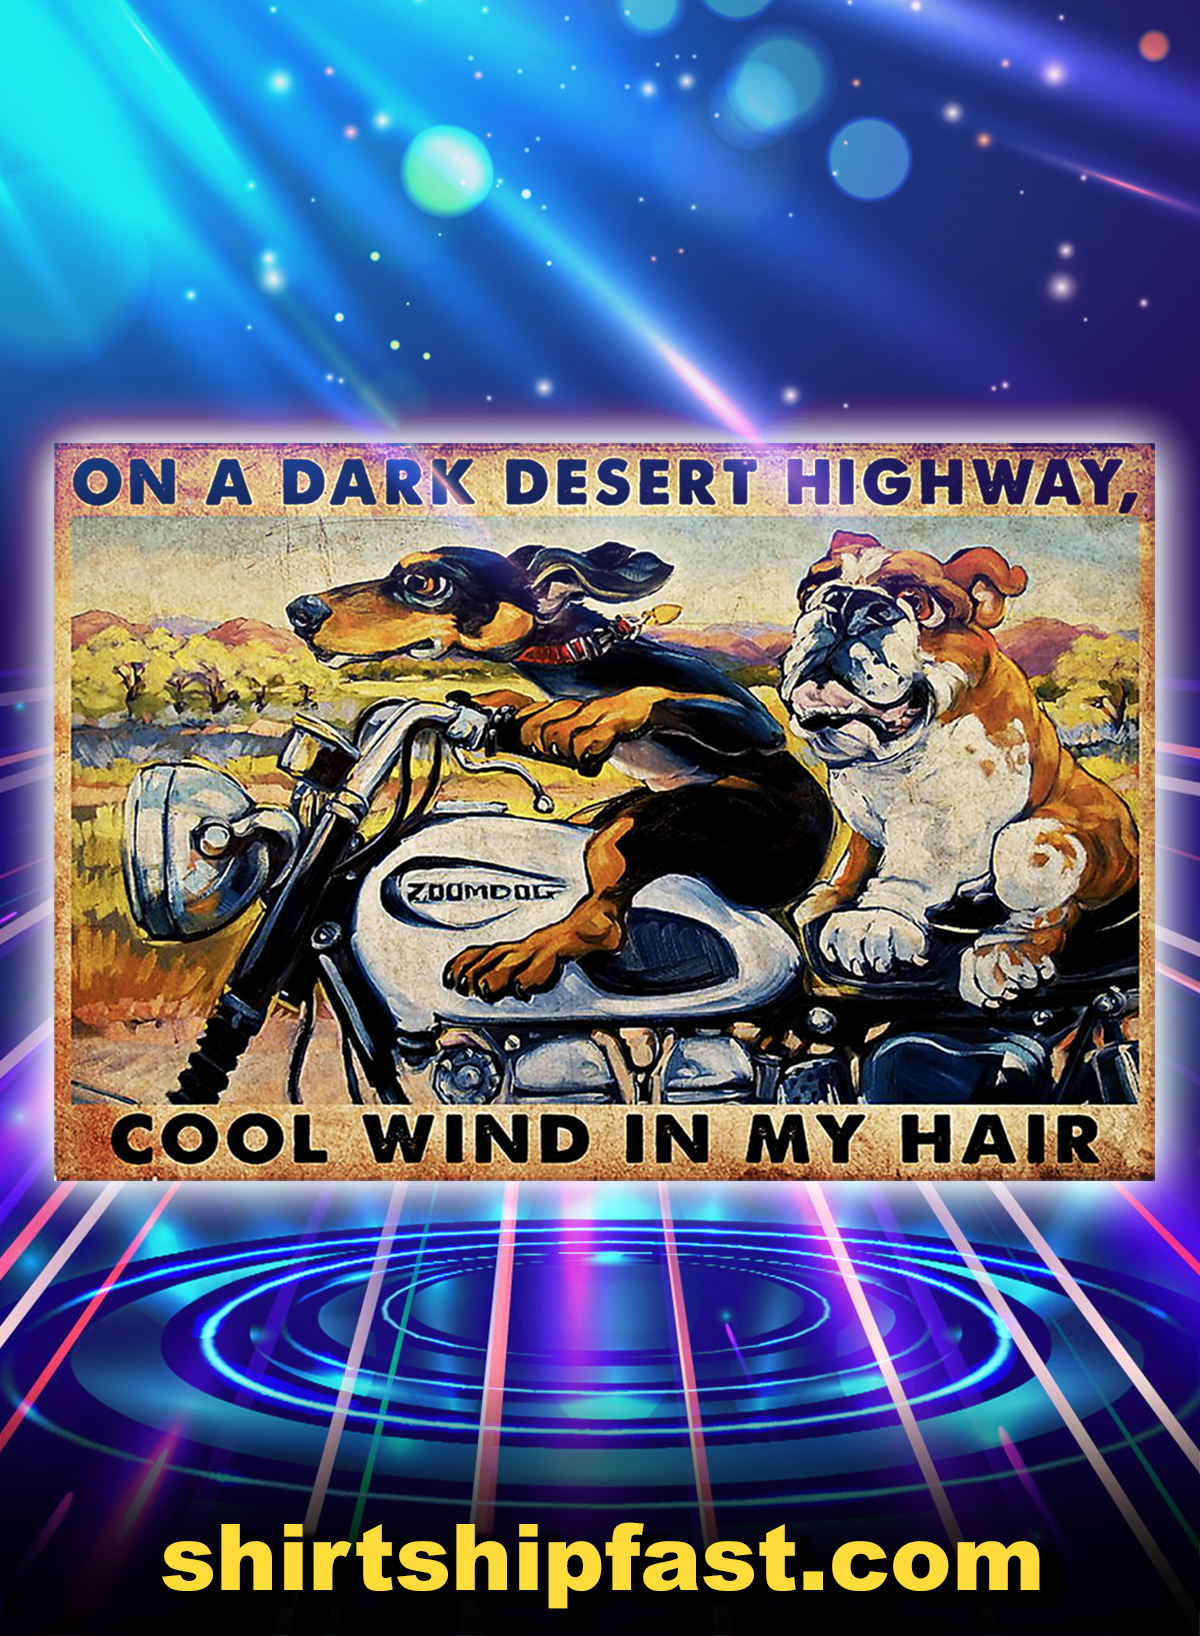 Motorcycle dachshund and bulldog on a dark desert highway cool wind in my hair poster - A1